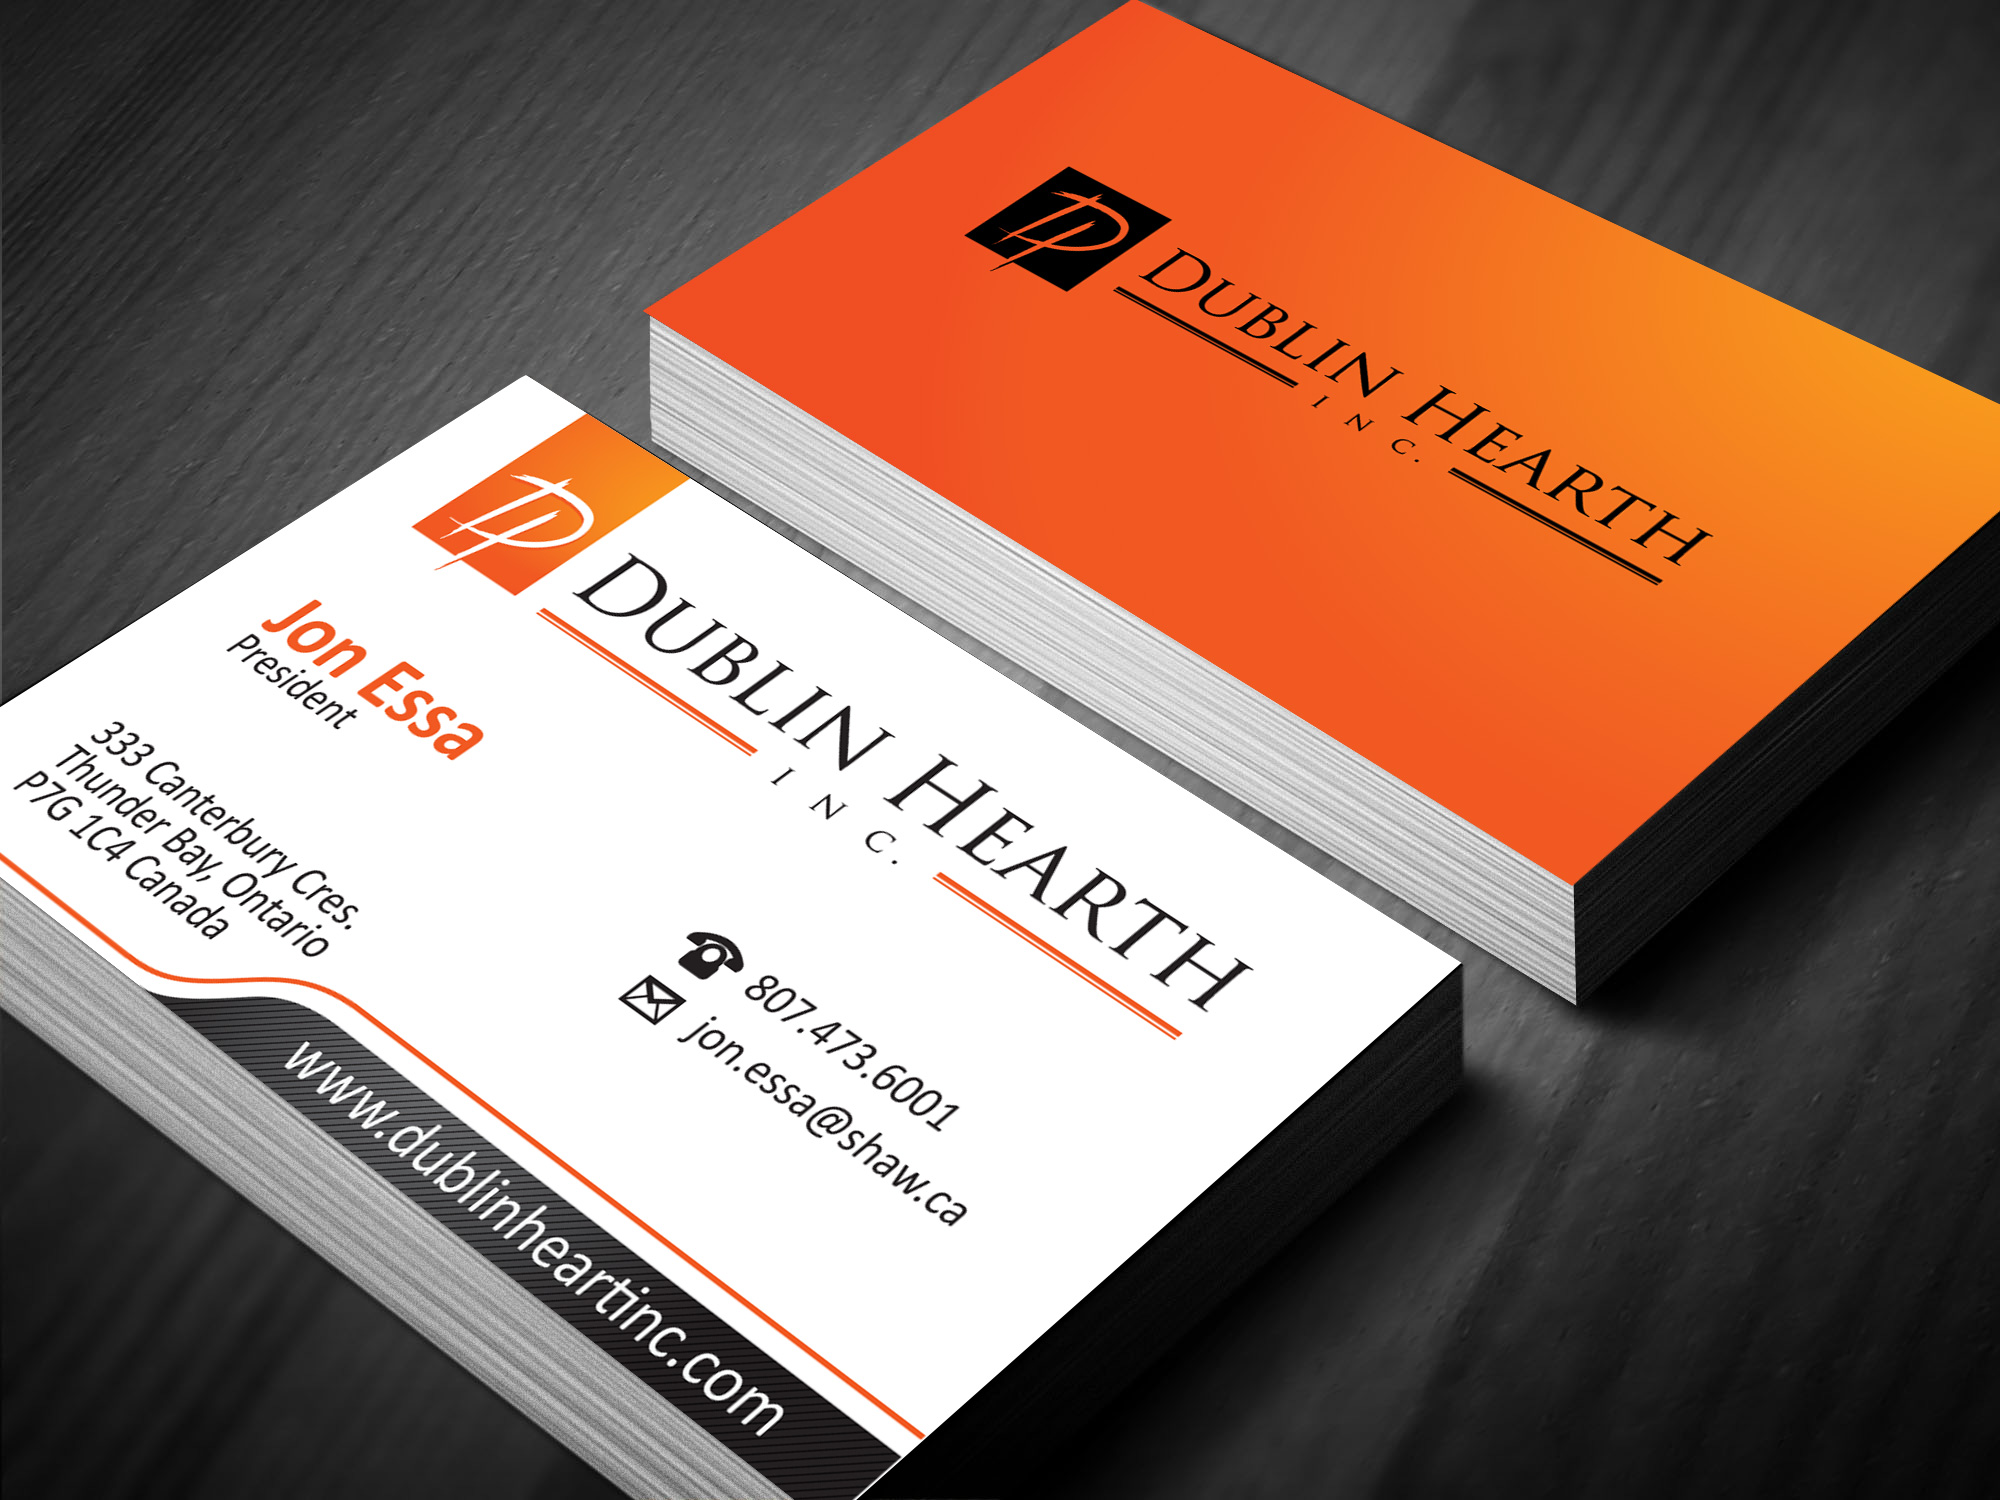 Business card design contests business card and letterhead design business card design by lagalag entry no 13 in the business card design contest reheart Images